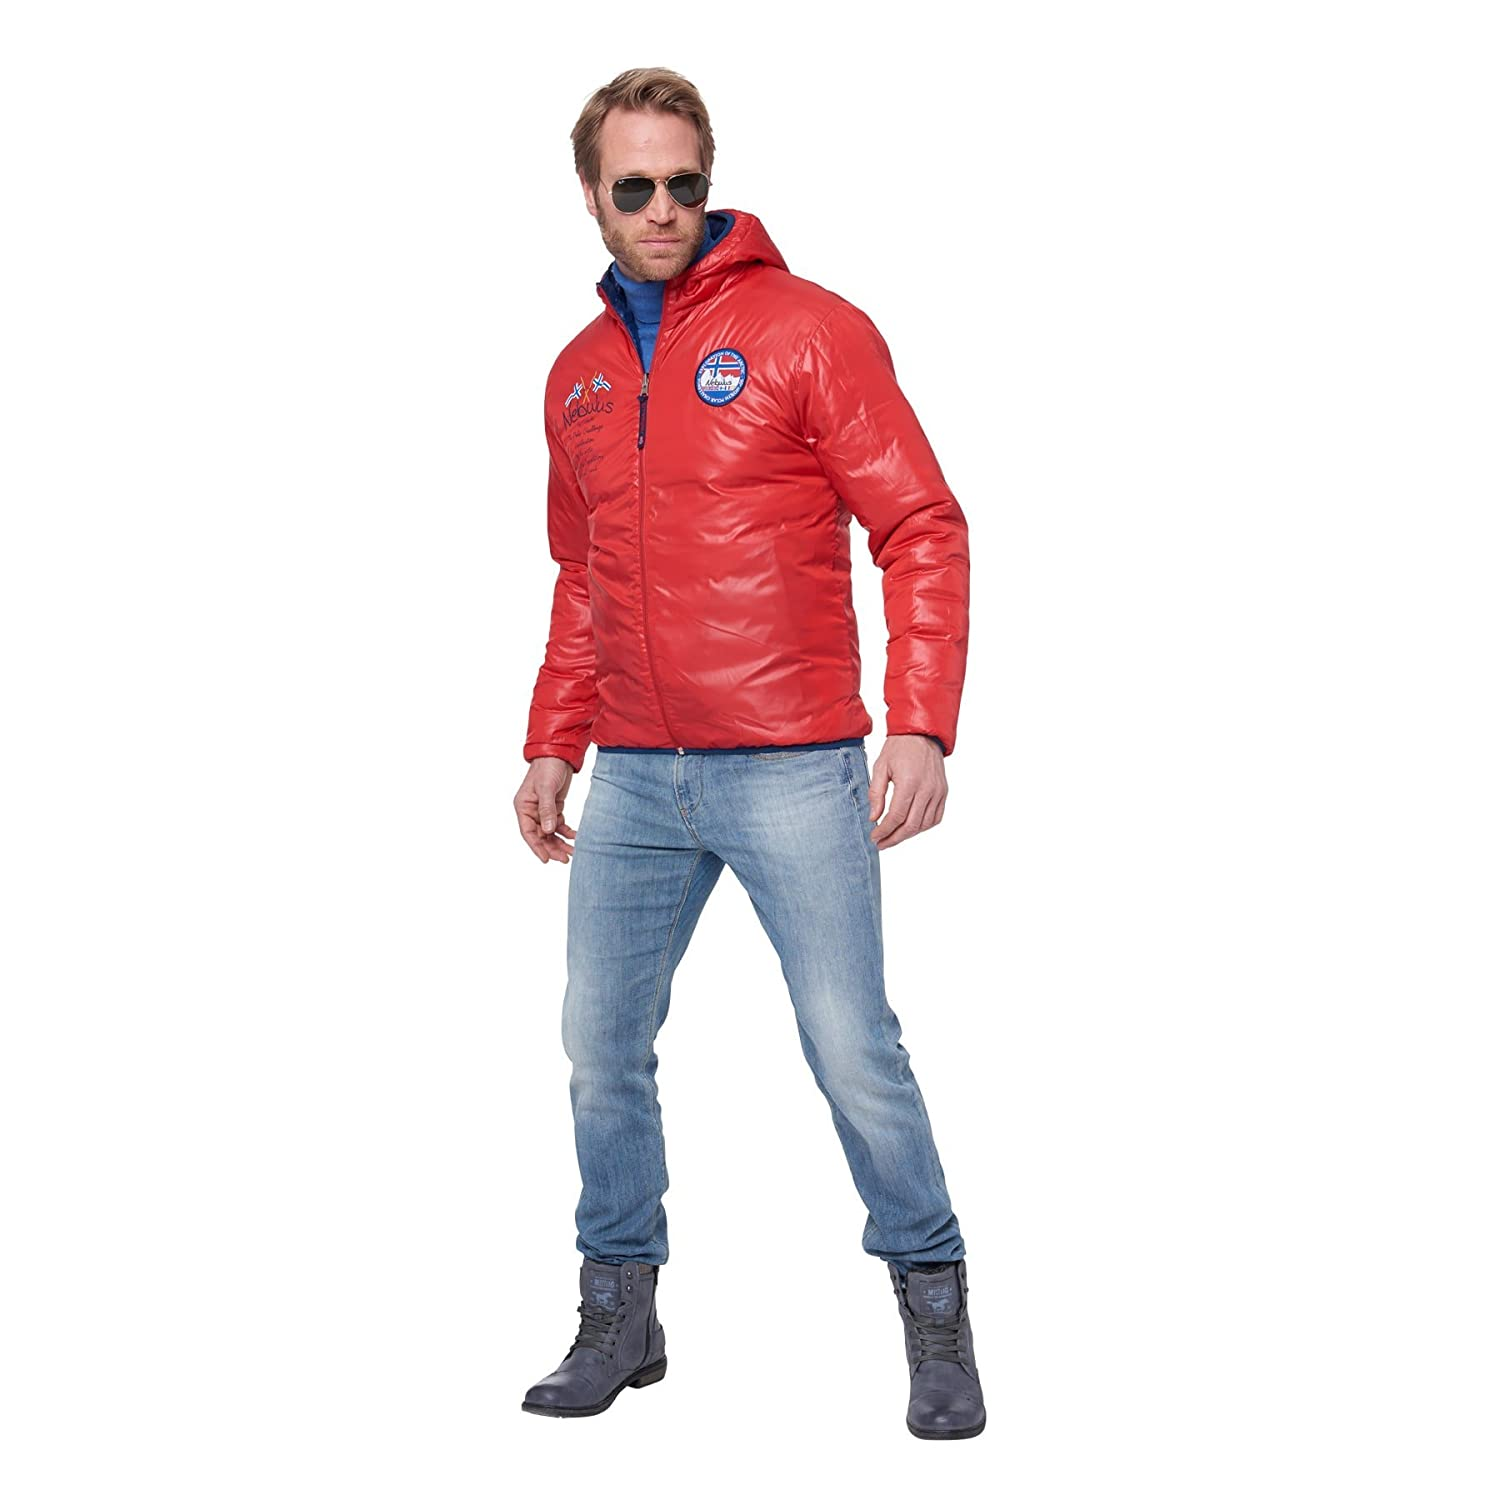 43d0f400eb688 Nebulus Men's Reversible Jacket Reverse Multi-Coloured Navy-Rot Size:S:  Amazon.co.uk: Sports & Outdoors